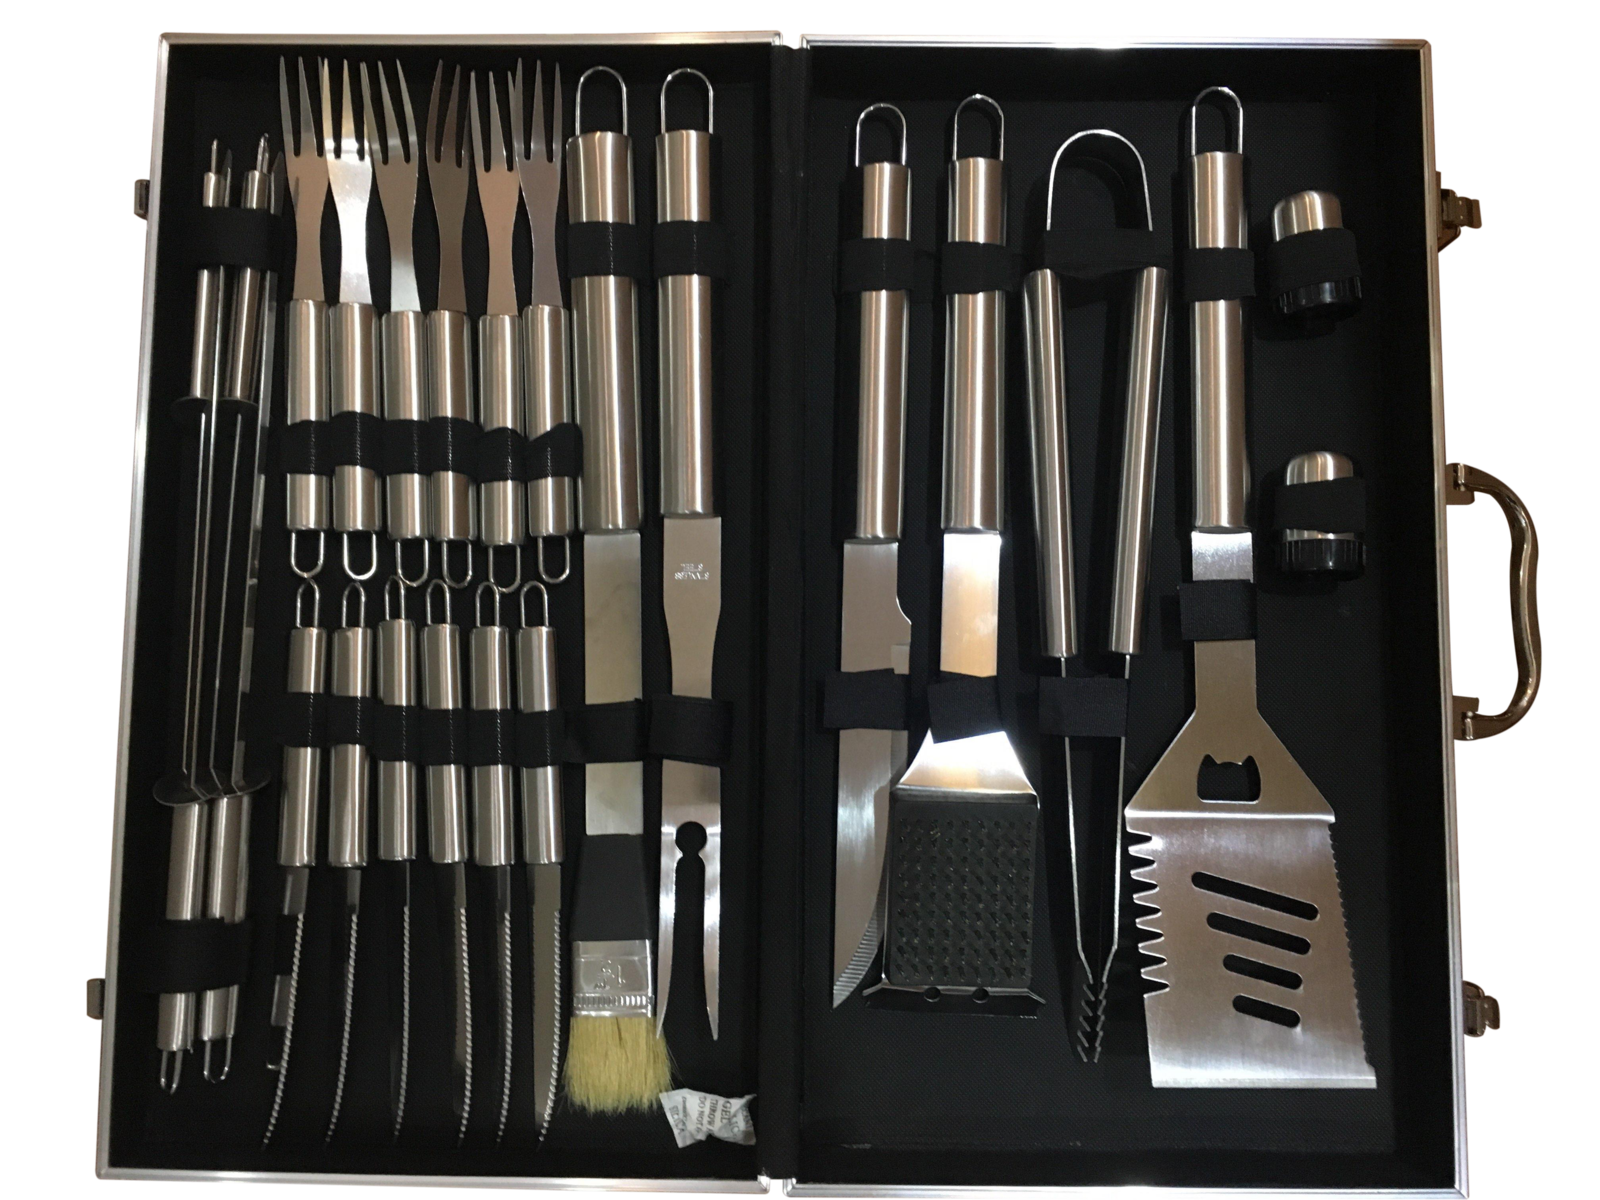 BBQ Grill Tool Set - 24-Piece (With Aluminium Carry Case) image